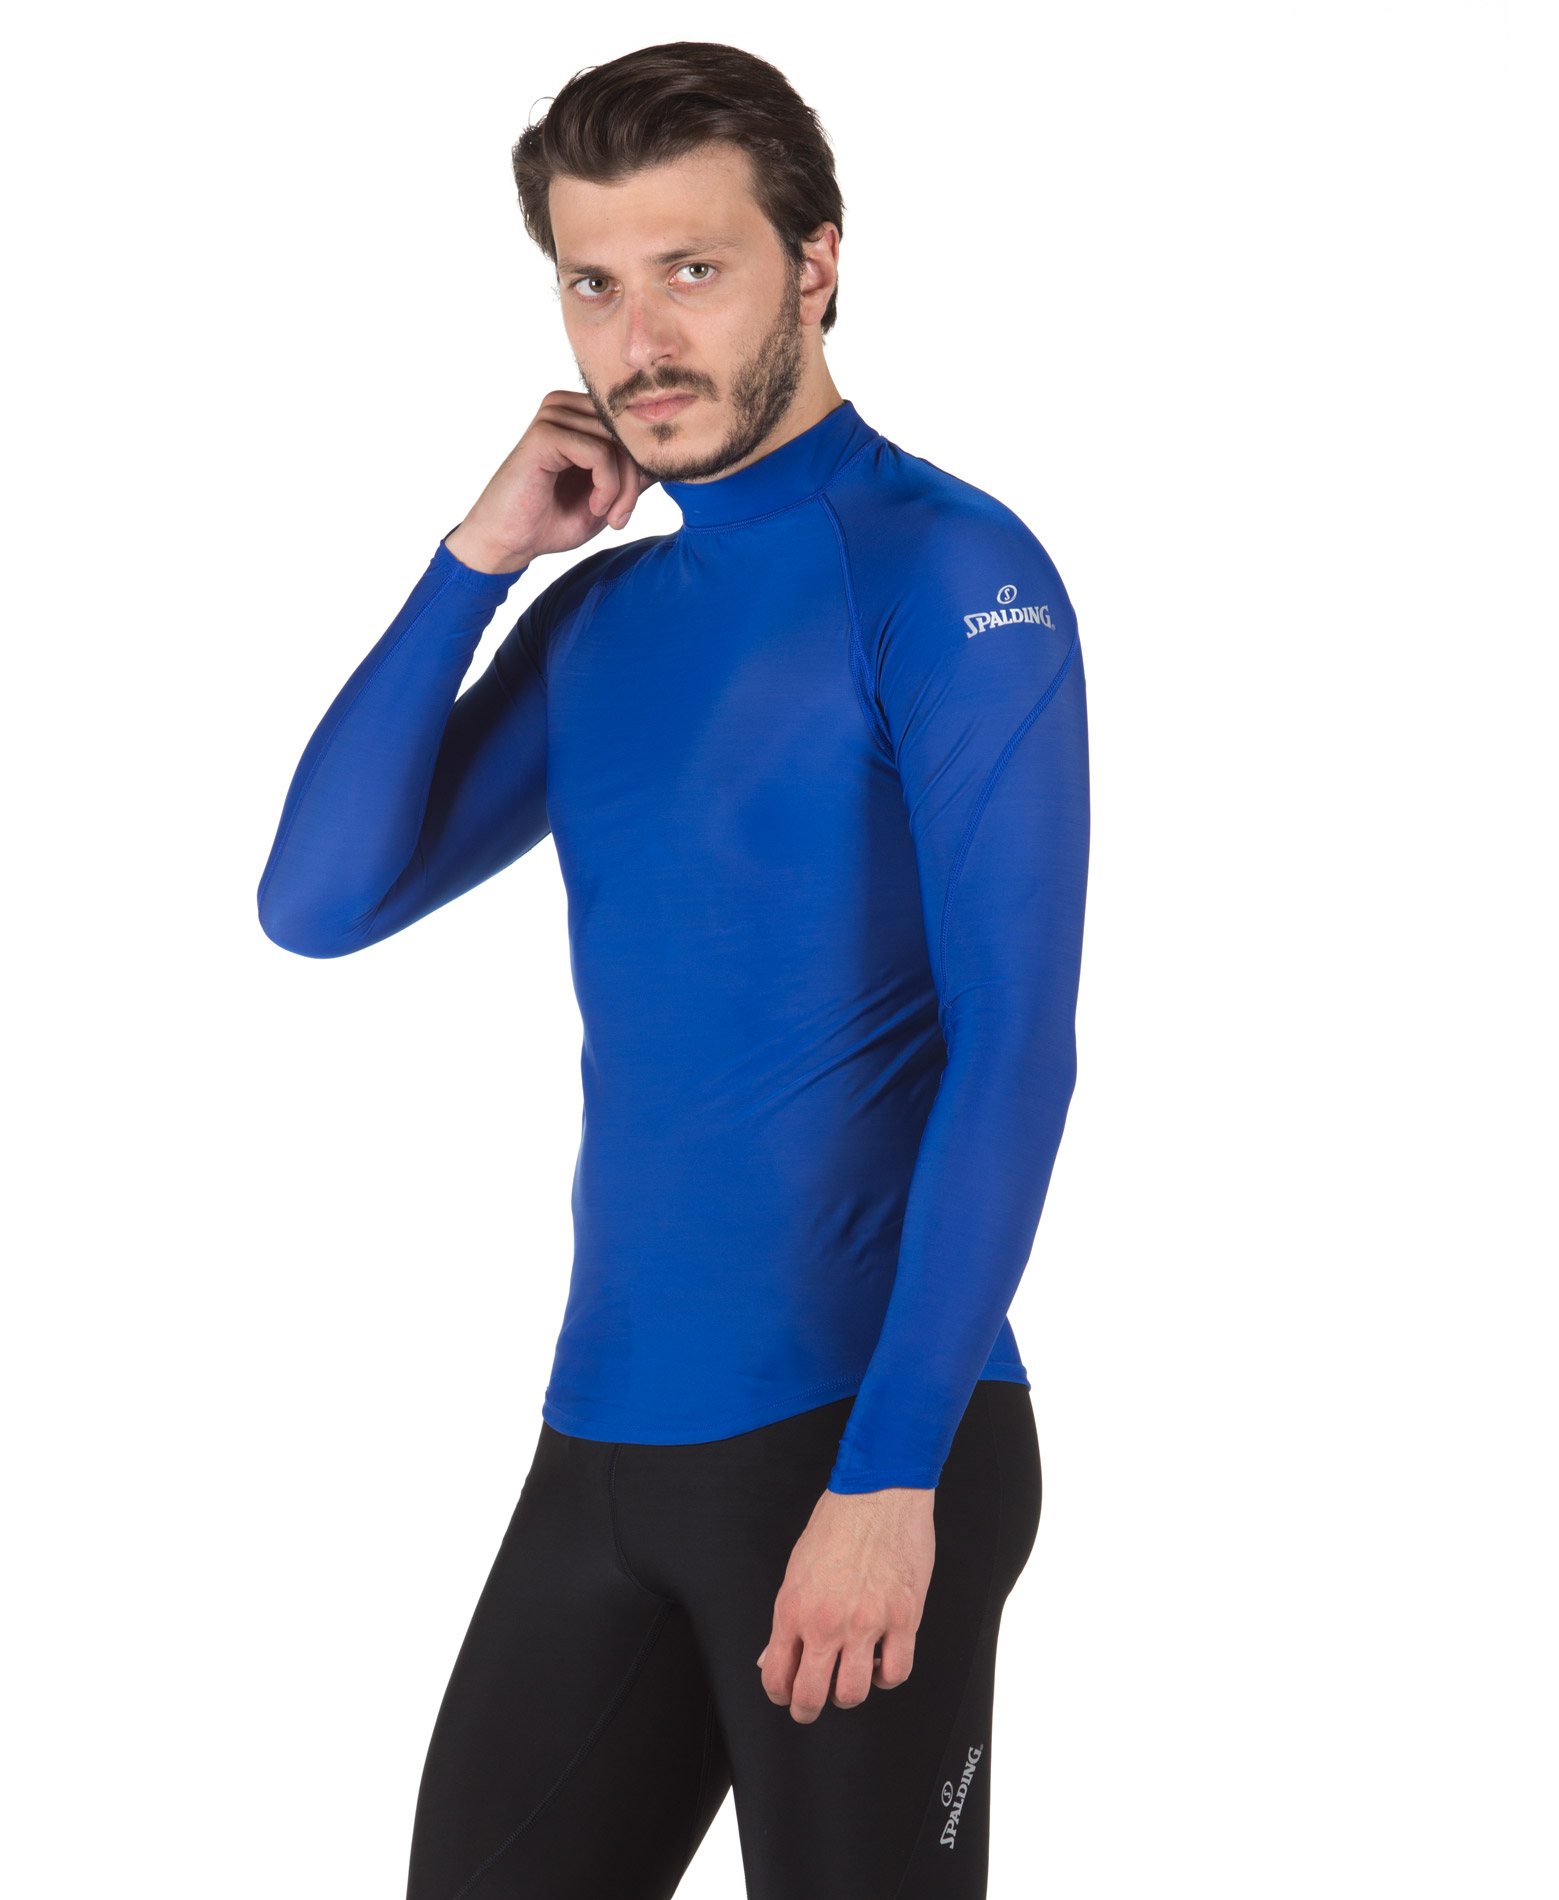 SPALDING MENS RESPONSE LS BASE LAYER 0SB002-RL Ρουά